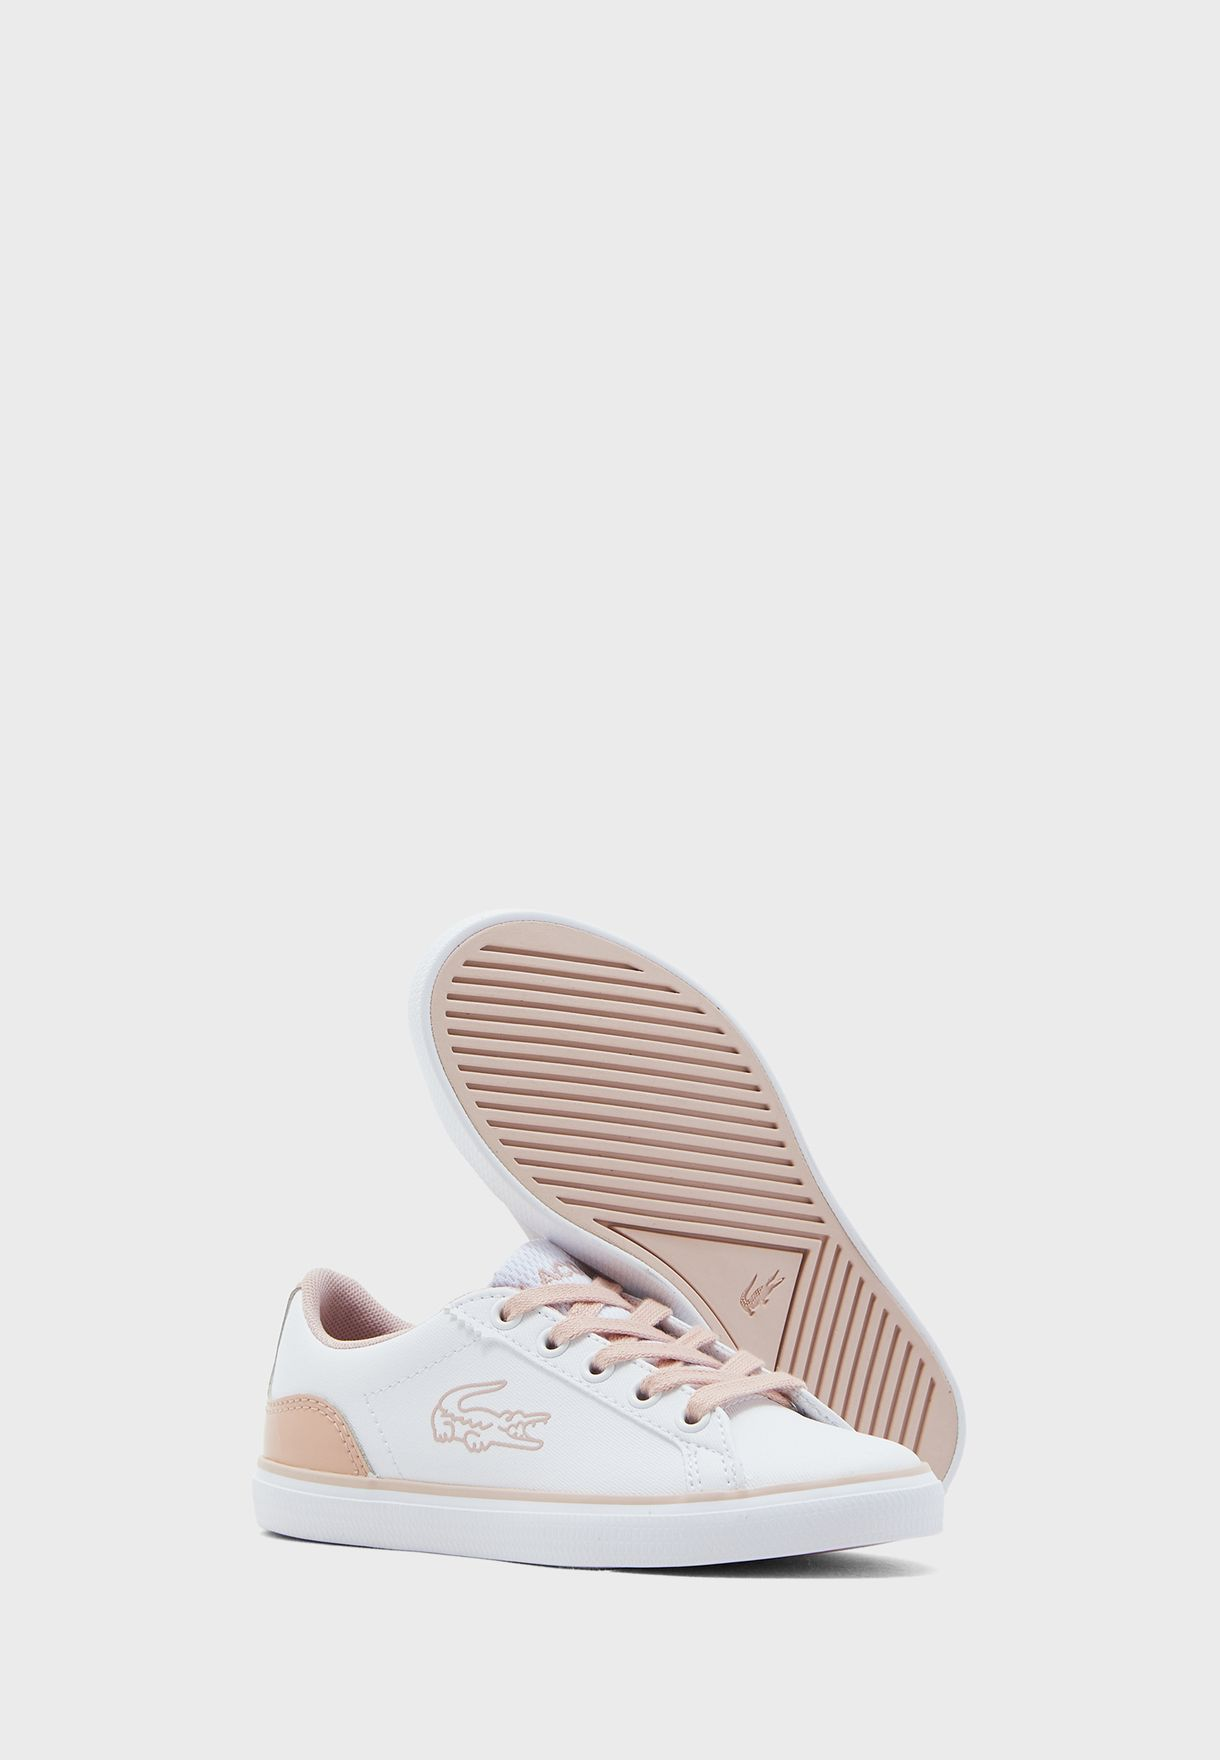 Youth Lerond 120 1 Cuc Sneaker